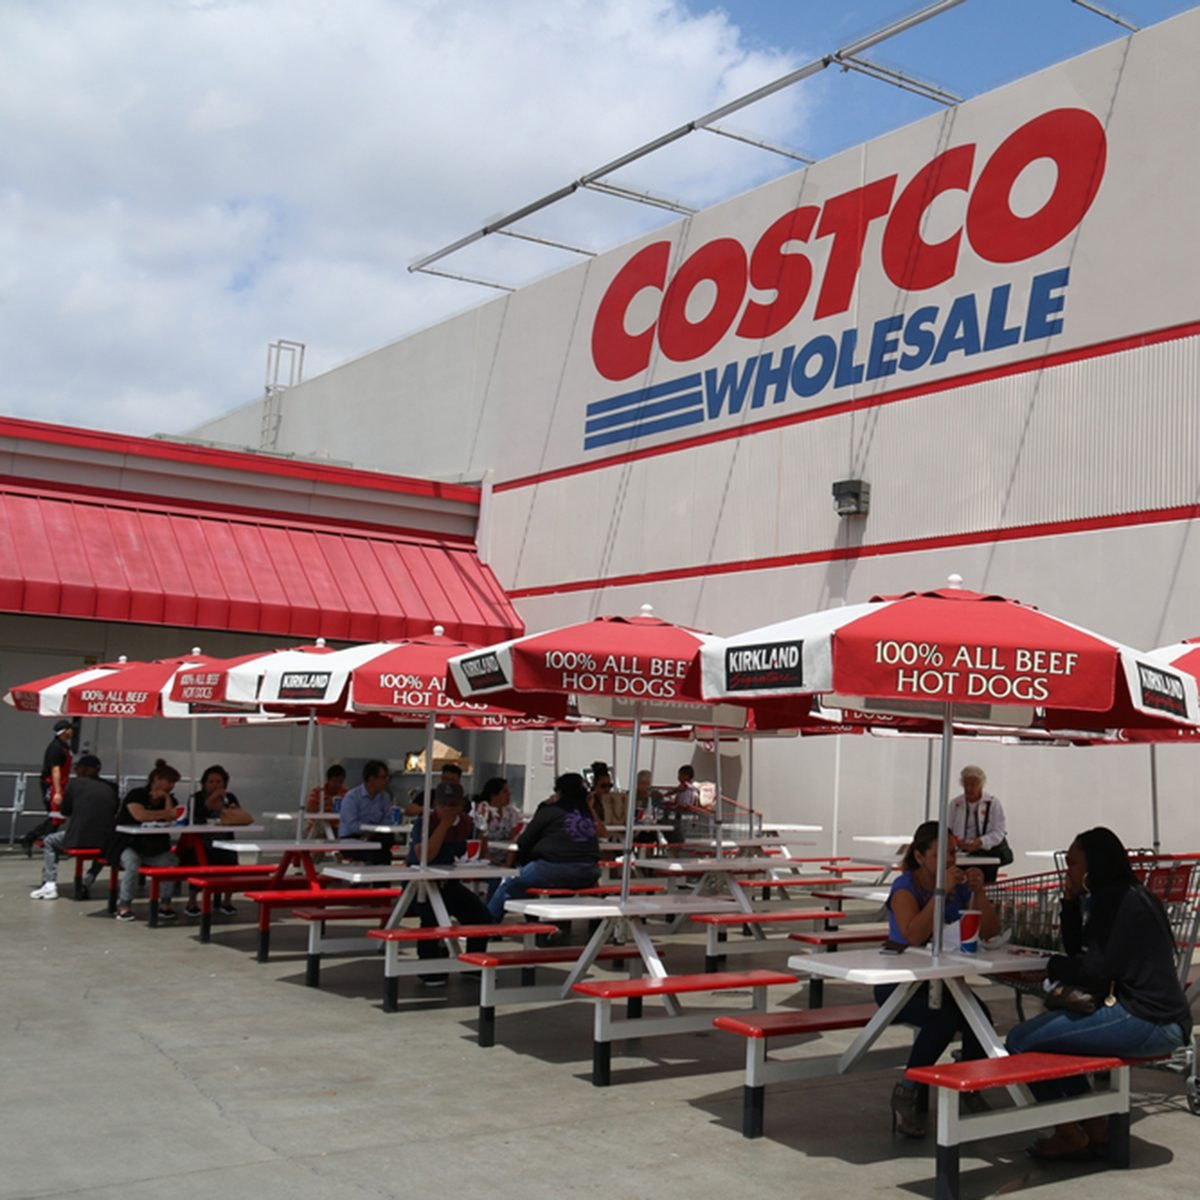 Codtco Com: 20 Things You Never Knew About Costco Food Courts